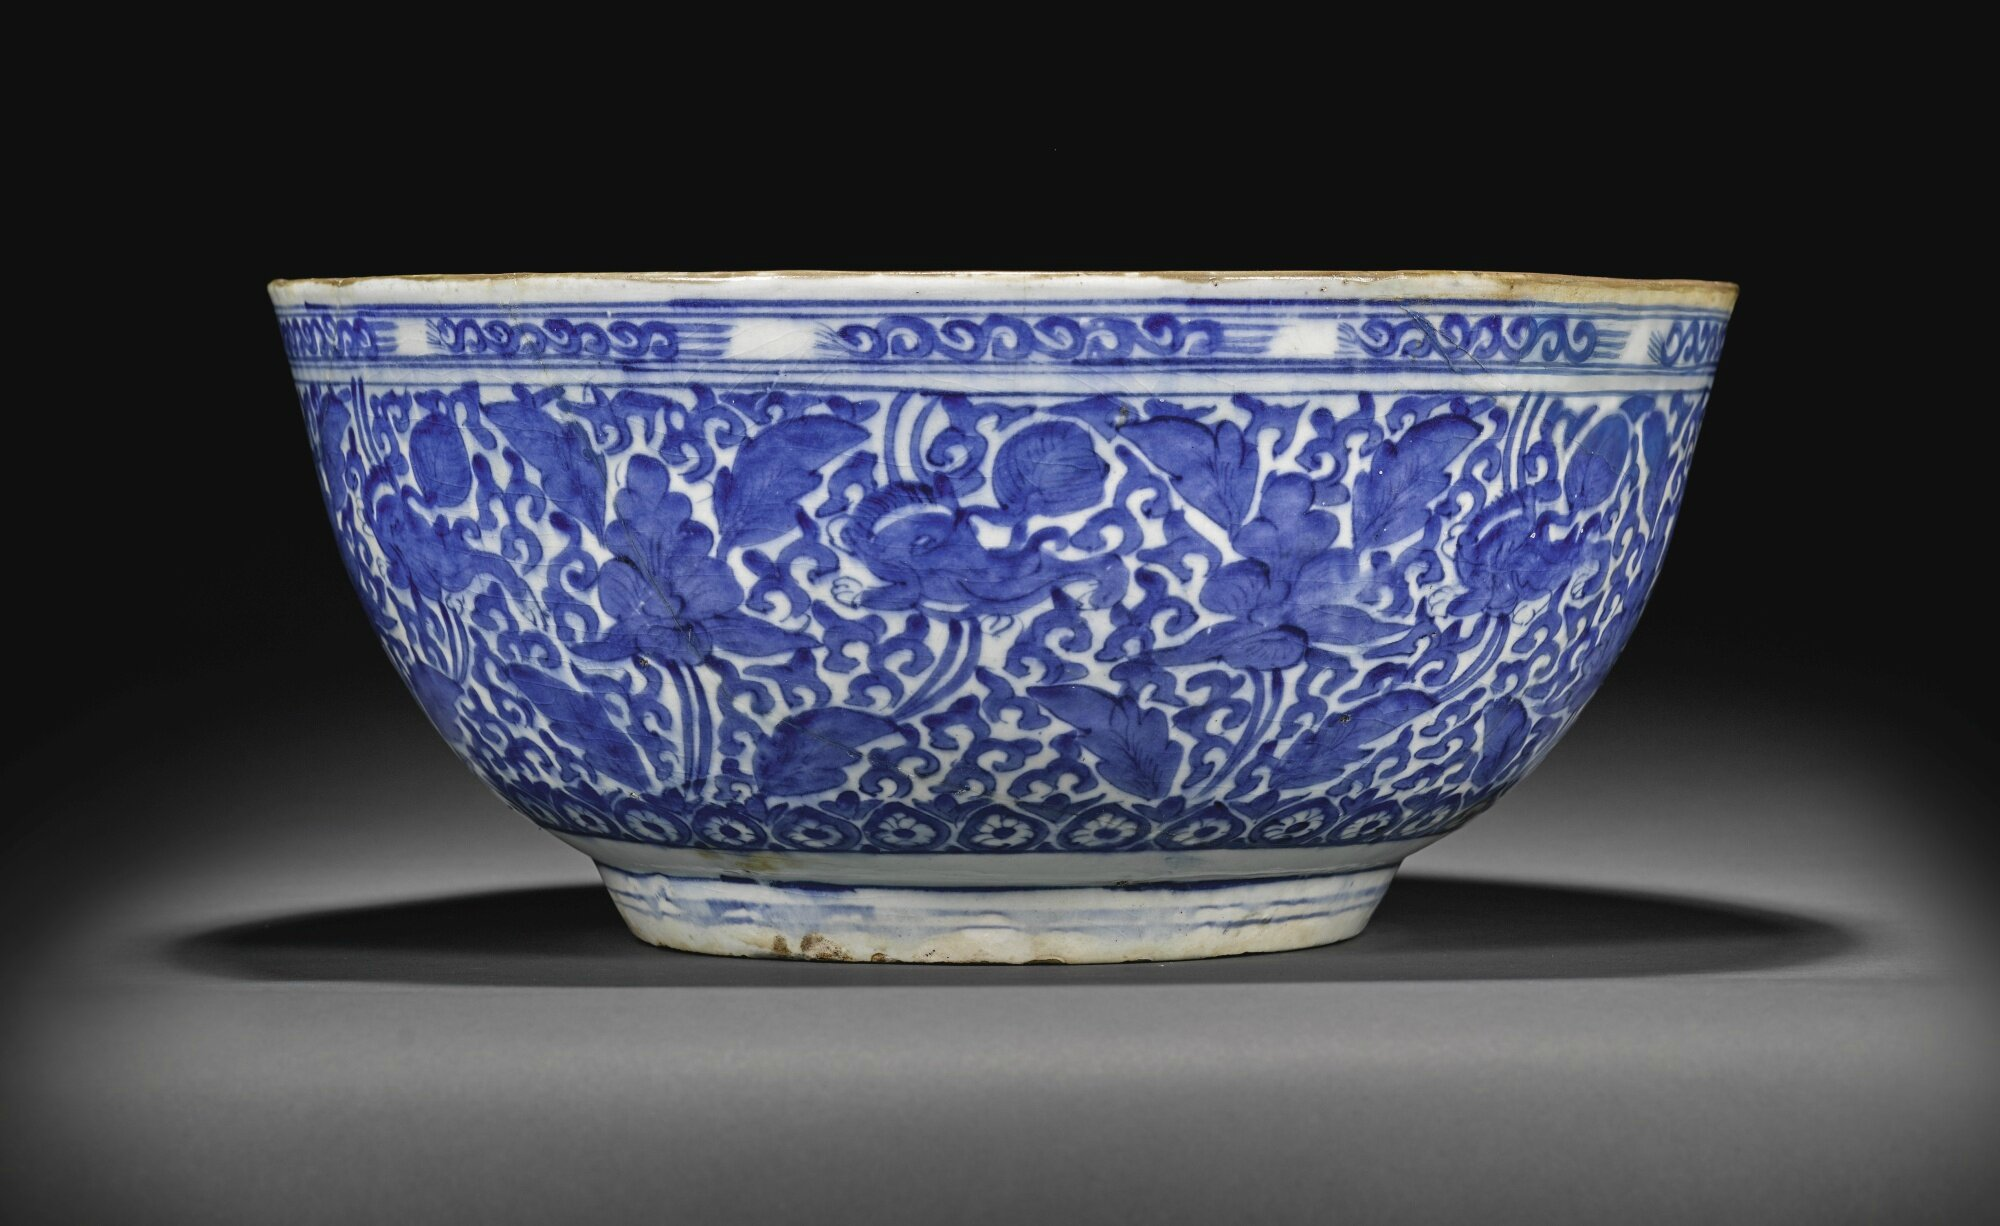 Blue and white pottery - A Large Safavid Blue And White Pottery Bowl Persia 17th Century